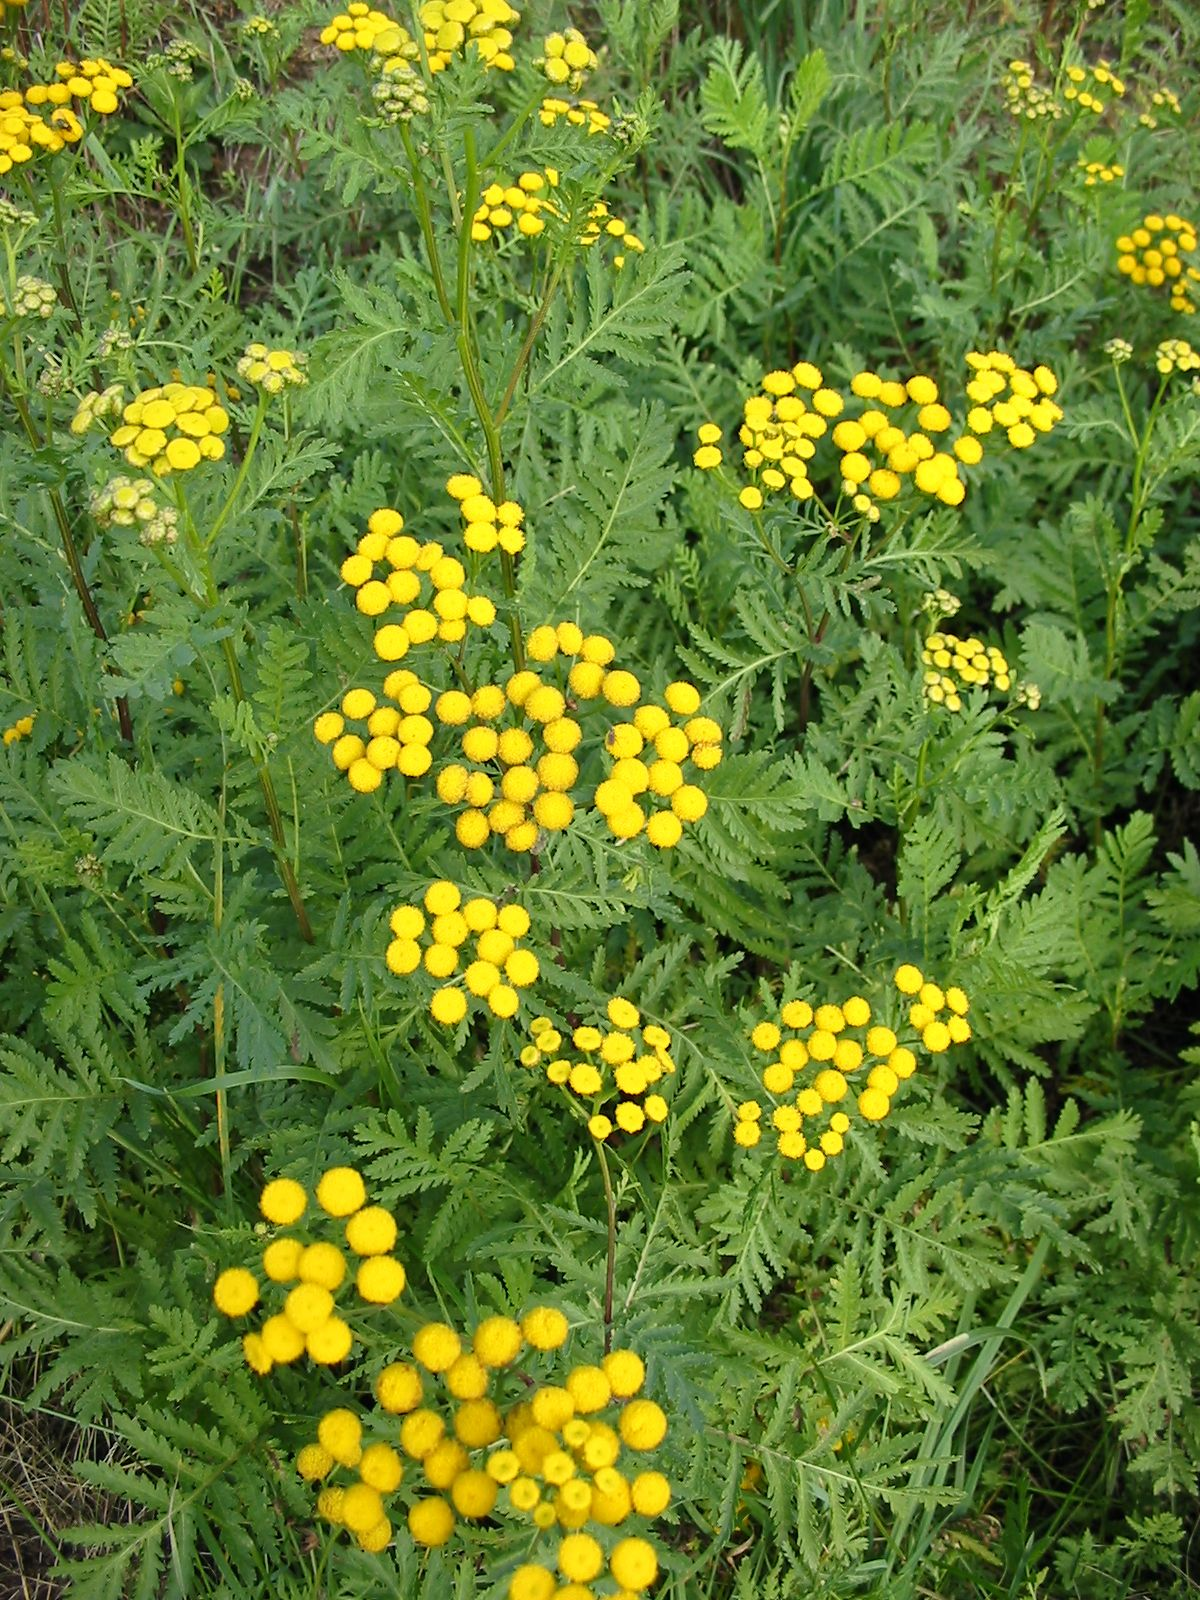 Tall yellow perennial flowers plants want to be able to indentify tall yellow perennial flowers plants want to be able to indentify plants with your mobile phone check out gardenanswers mightylinksfo